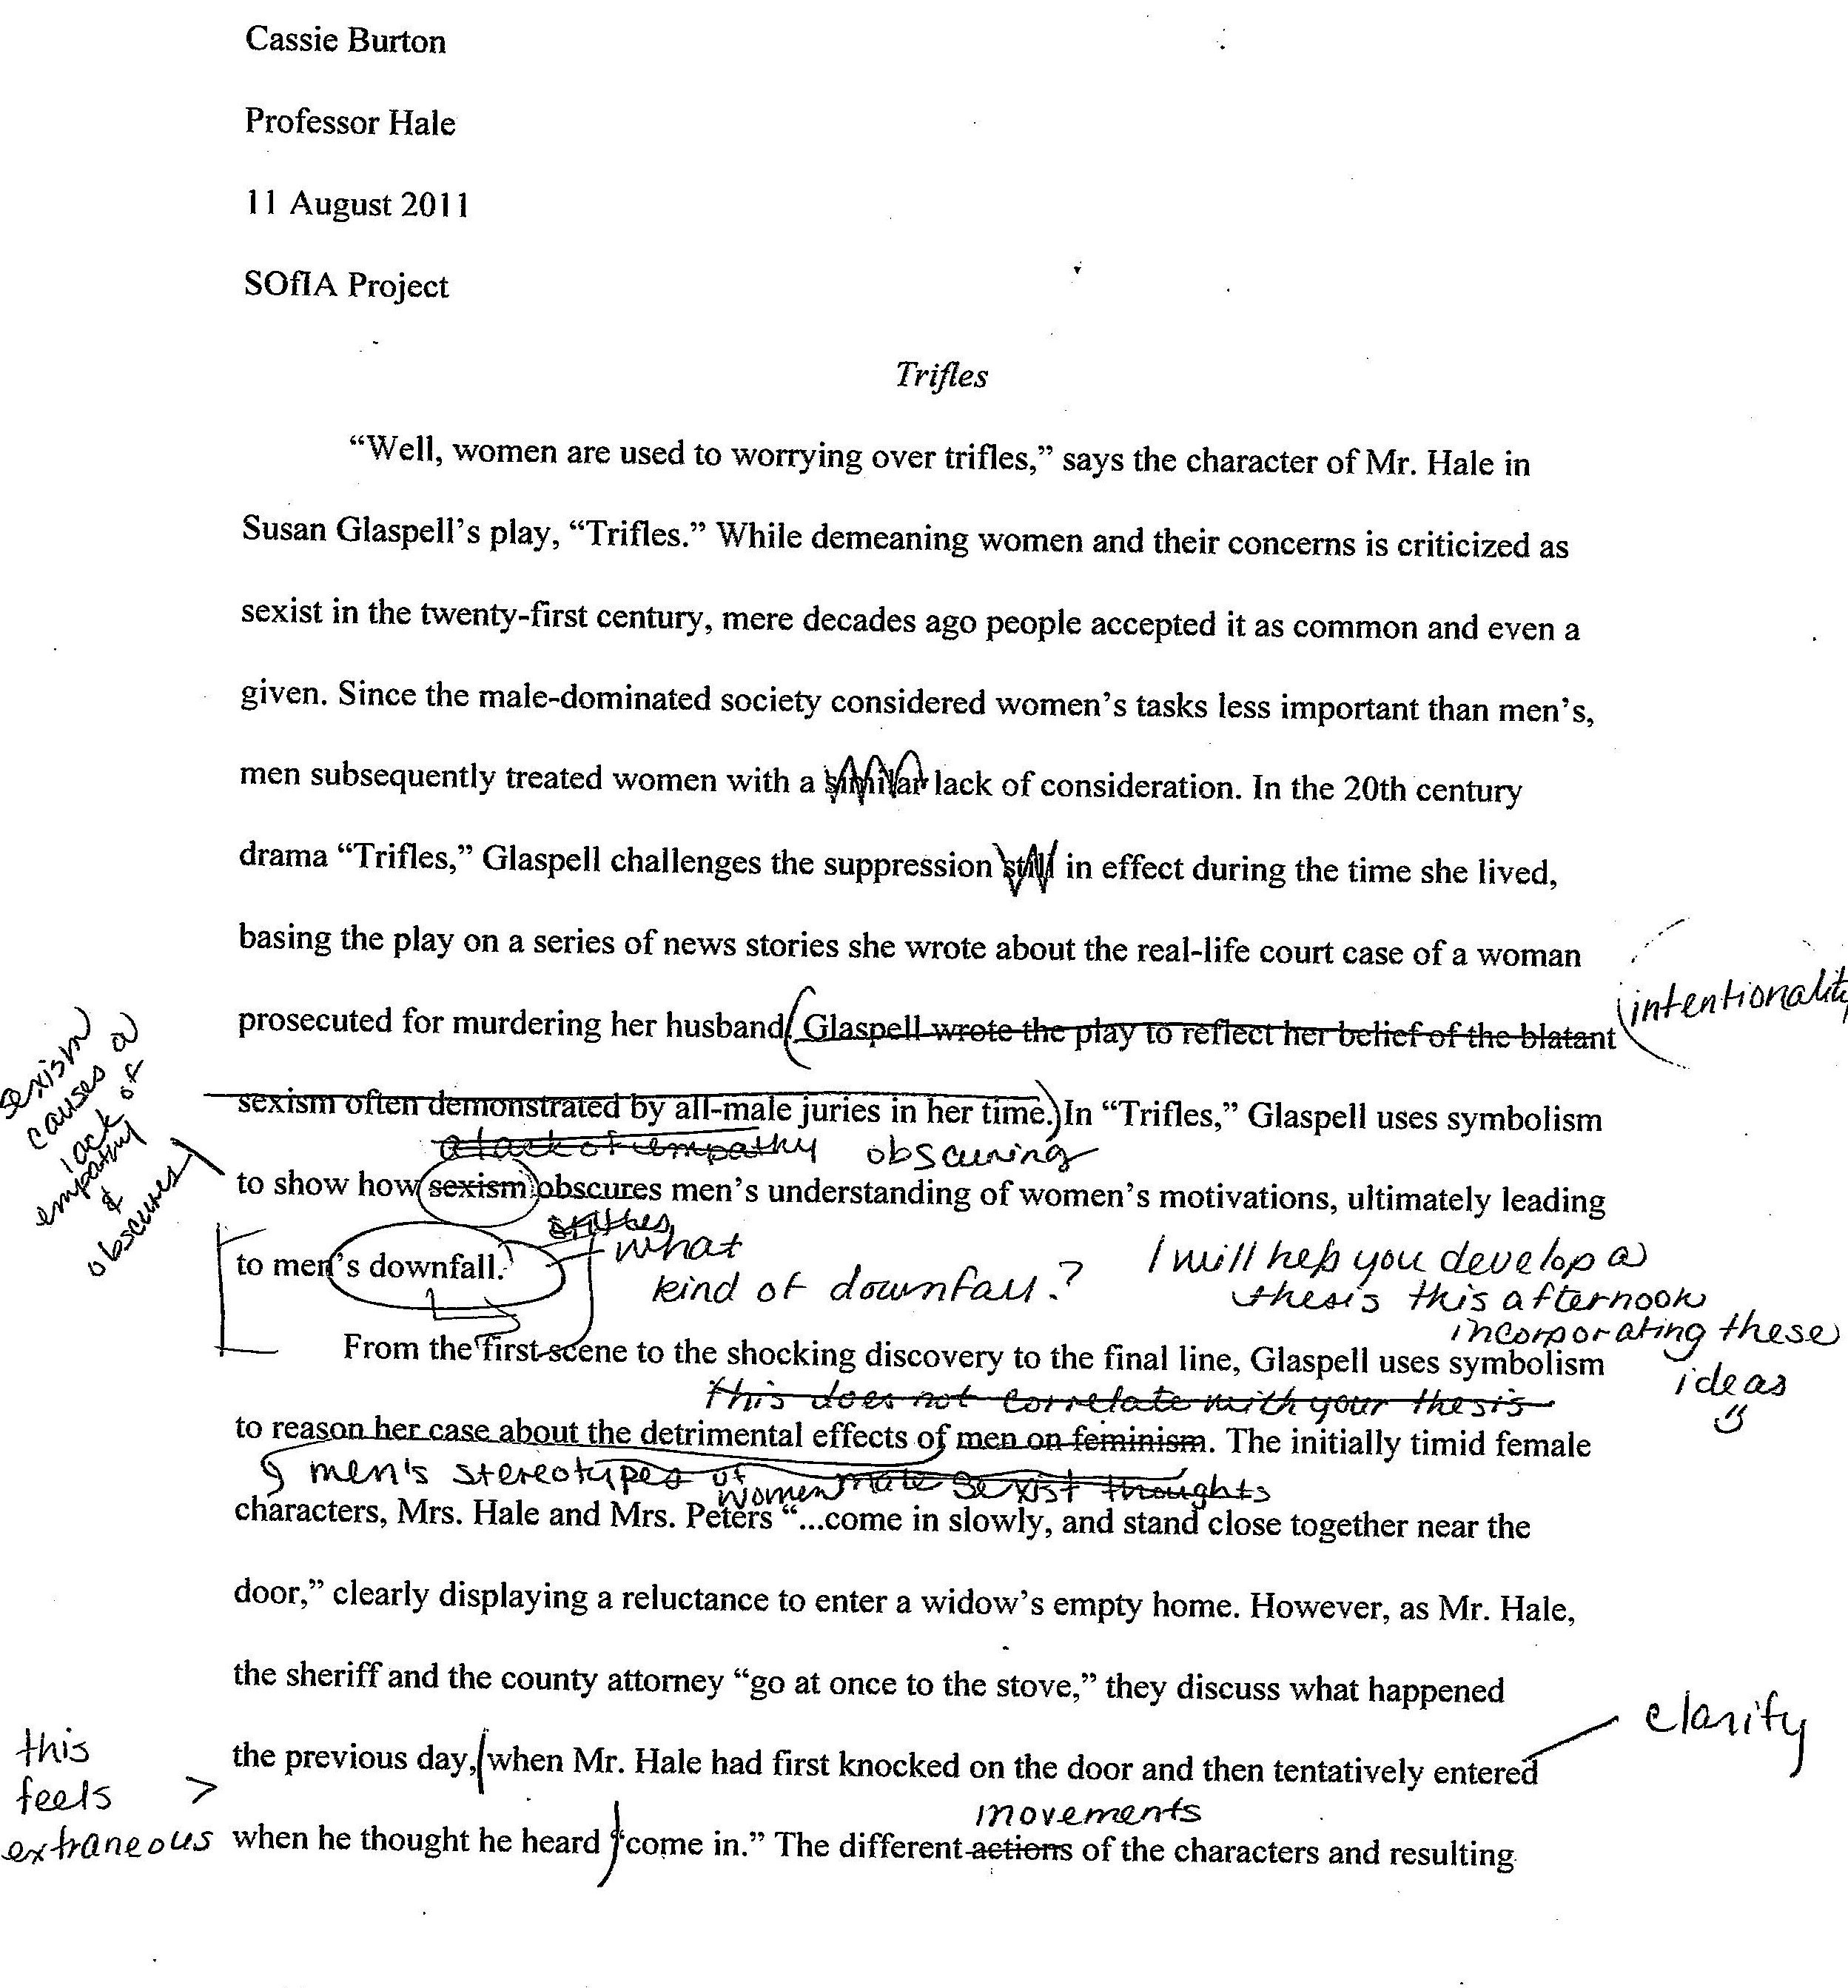 essay on trifles by susan glaspell trifles by susan glaspell trifles by susan glaspell students teaching english paper strategiessecond peer edit page